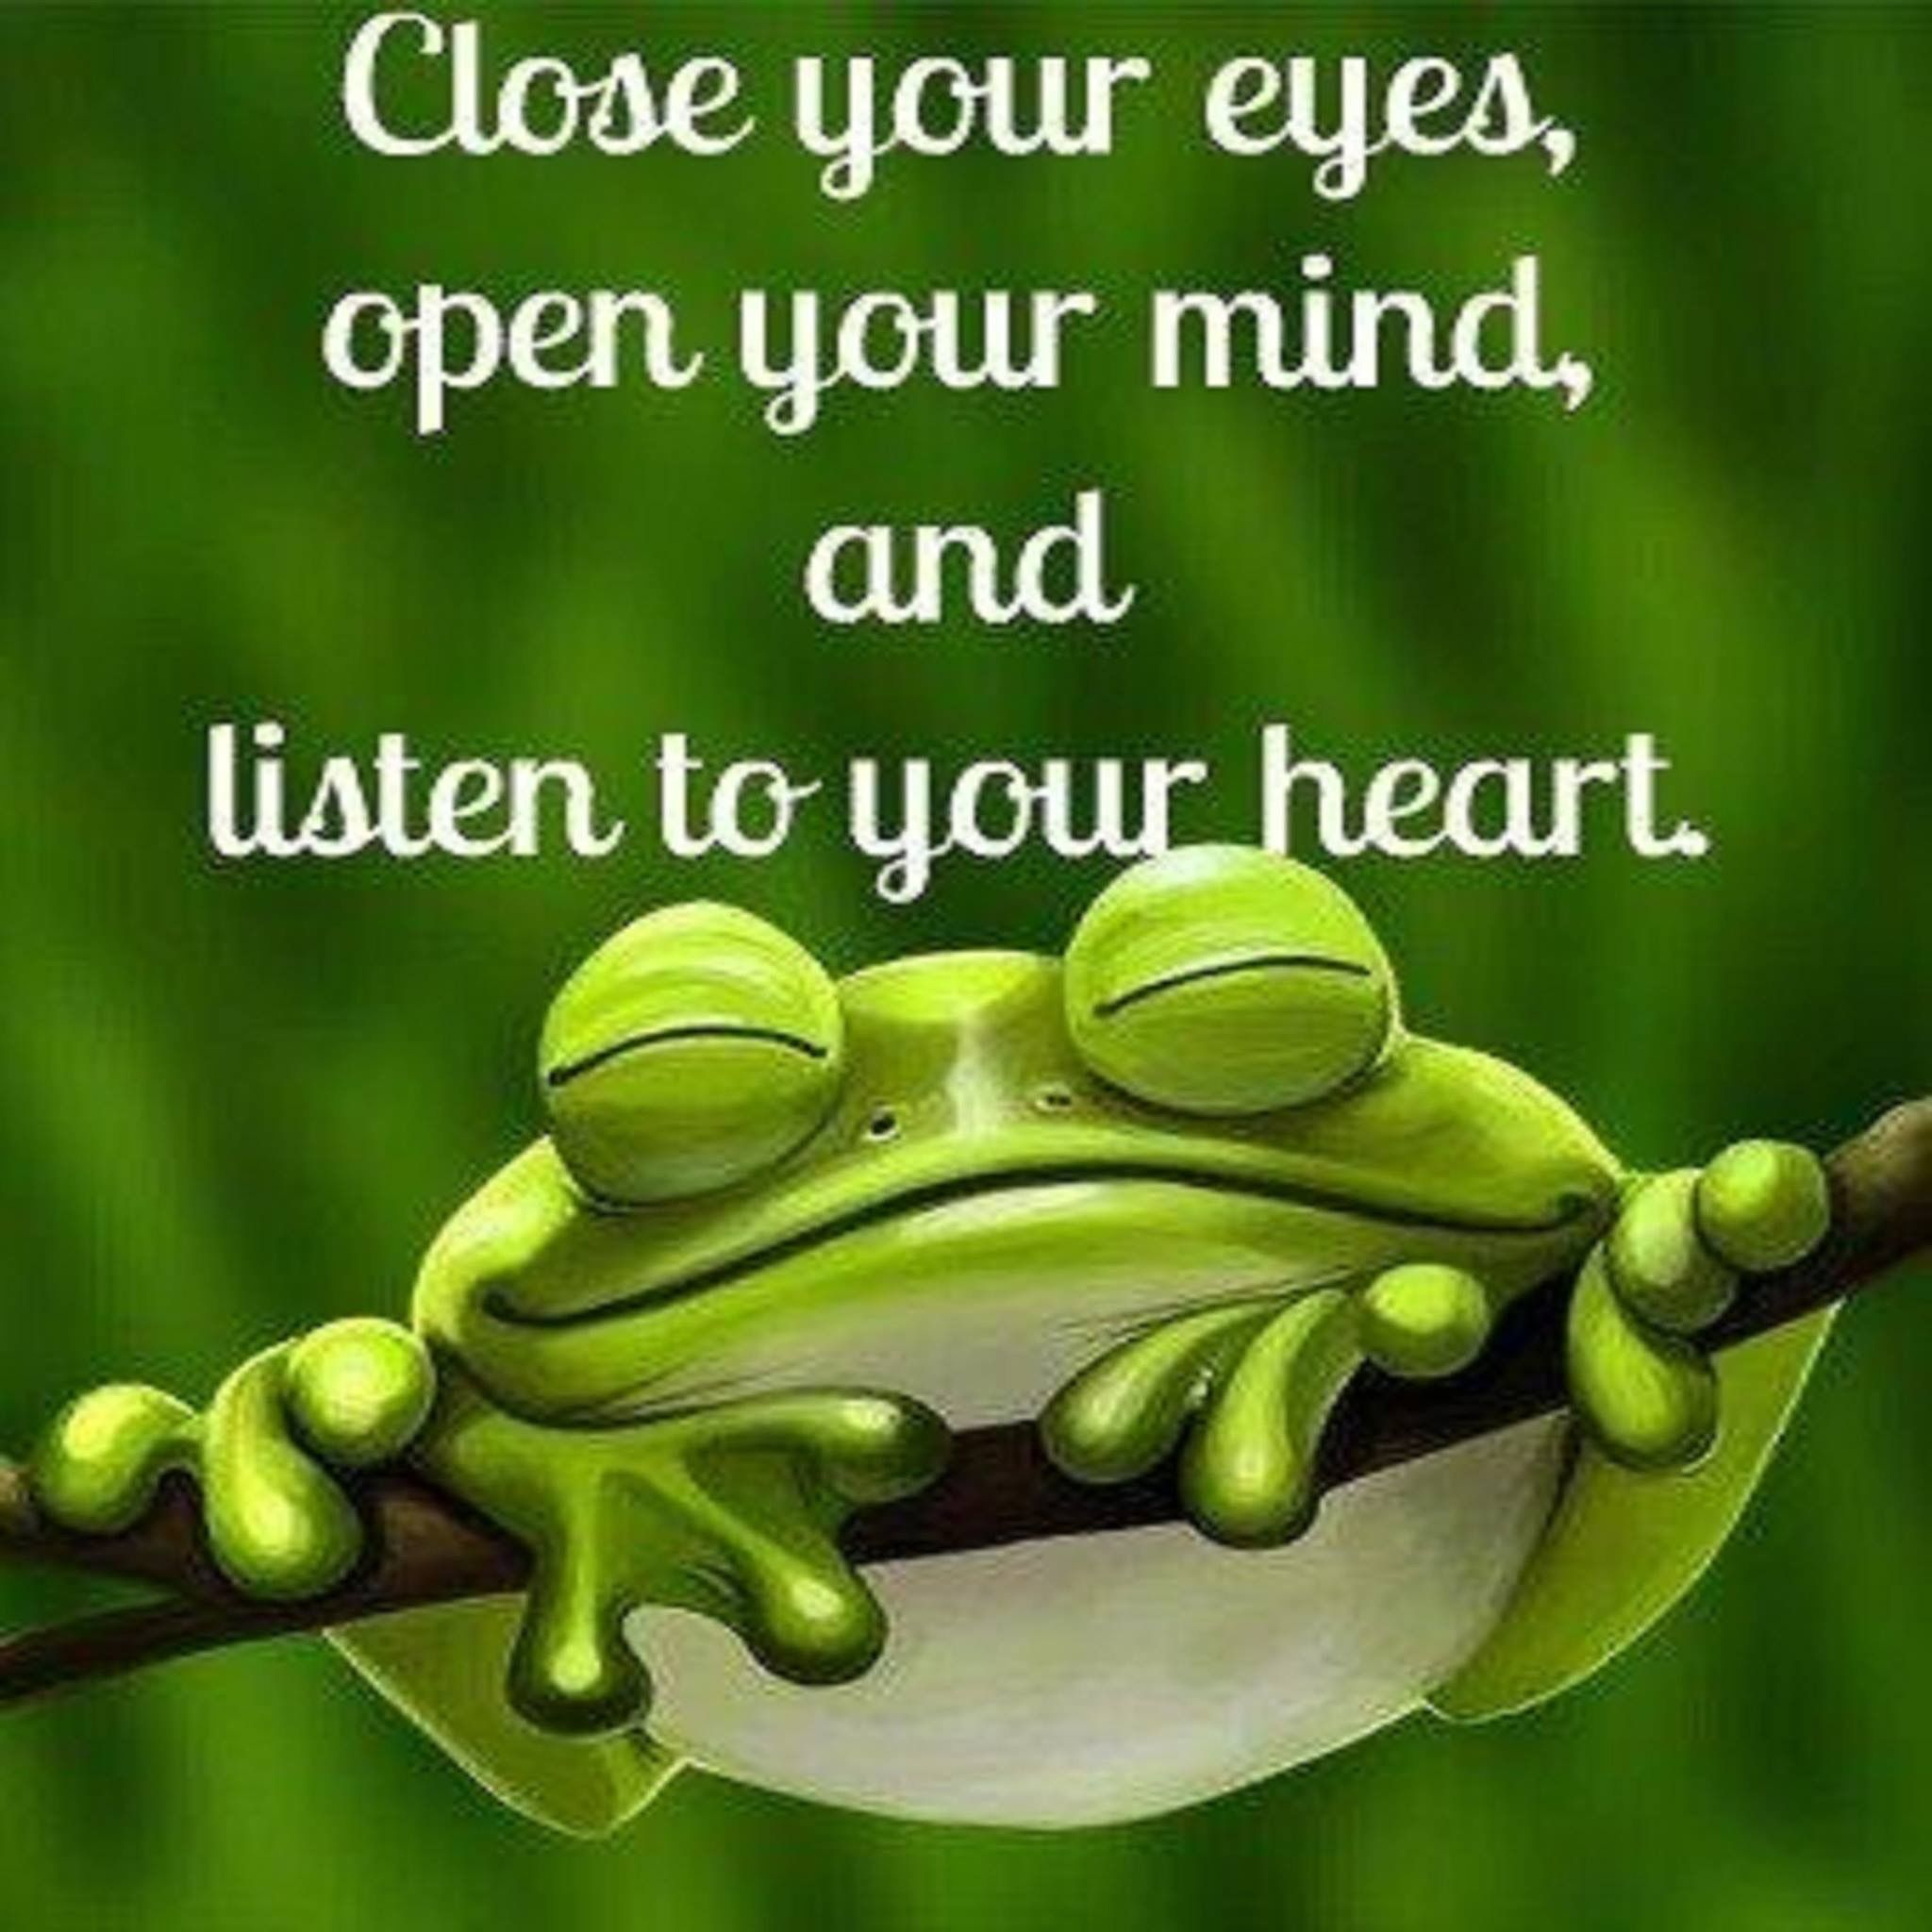 Cute Frog Quotes: Pin By Helen On ~ Inspiring Quotes ~